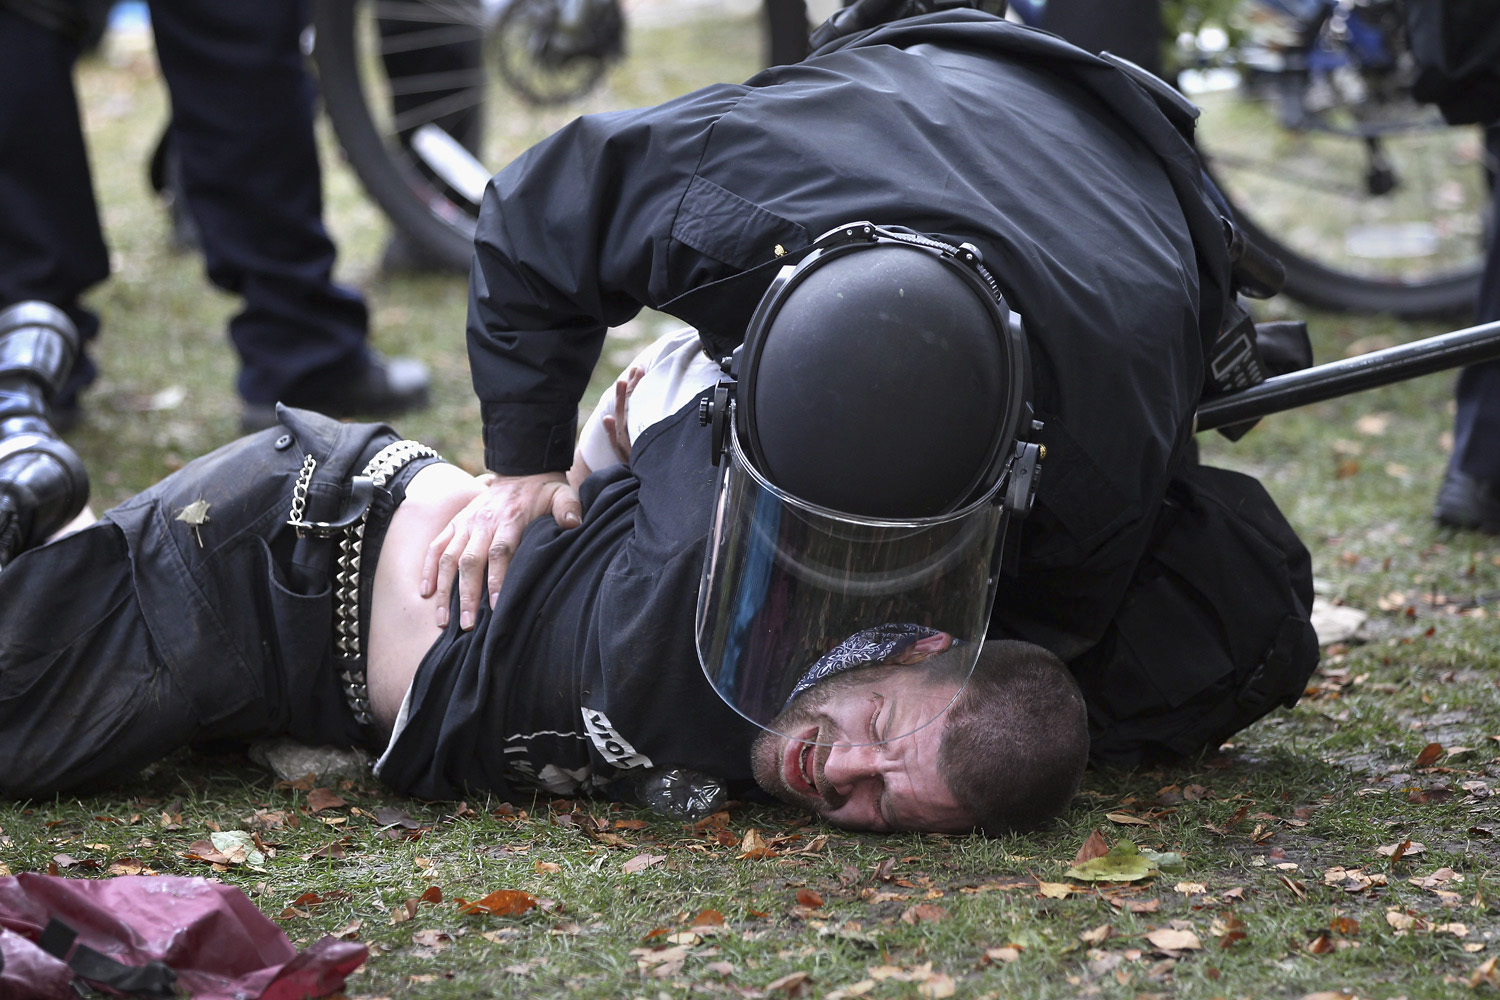 October 29, 2011. A policeman in riot gear arrests a protester at the  Occupy Denver  camp. Following a march by protesters, police tried to tear down some newly-errected tents at the encampment and scuffled with demonstrators.